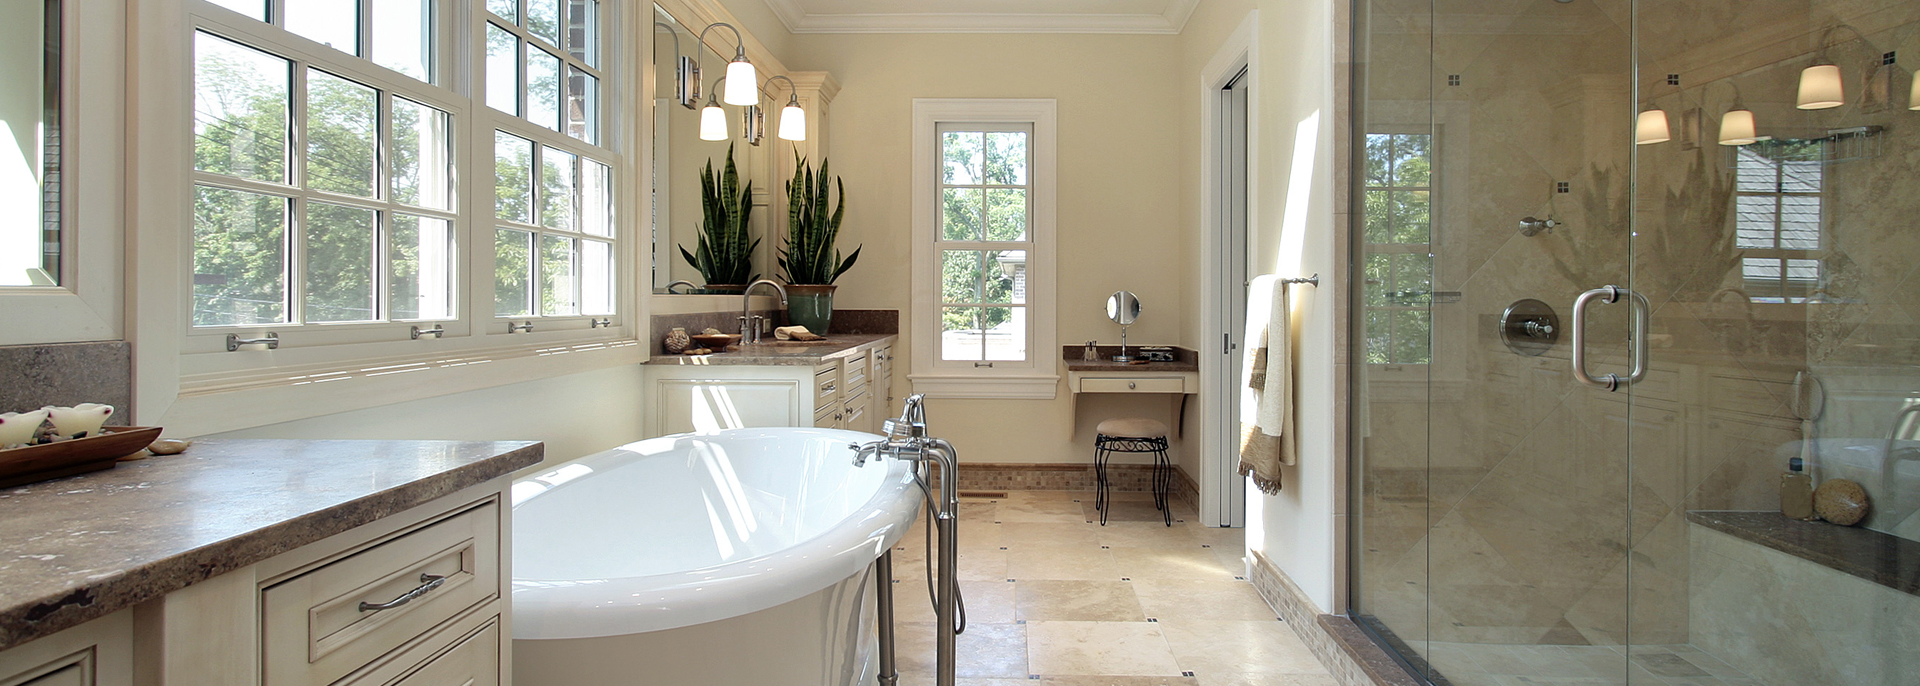 House Remodeling Contractors Near Me Bathroom Remodelers Howard County Md Kitchen Remodeling Contractors